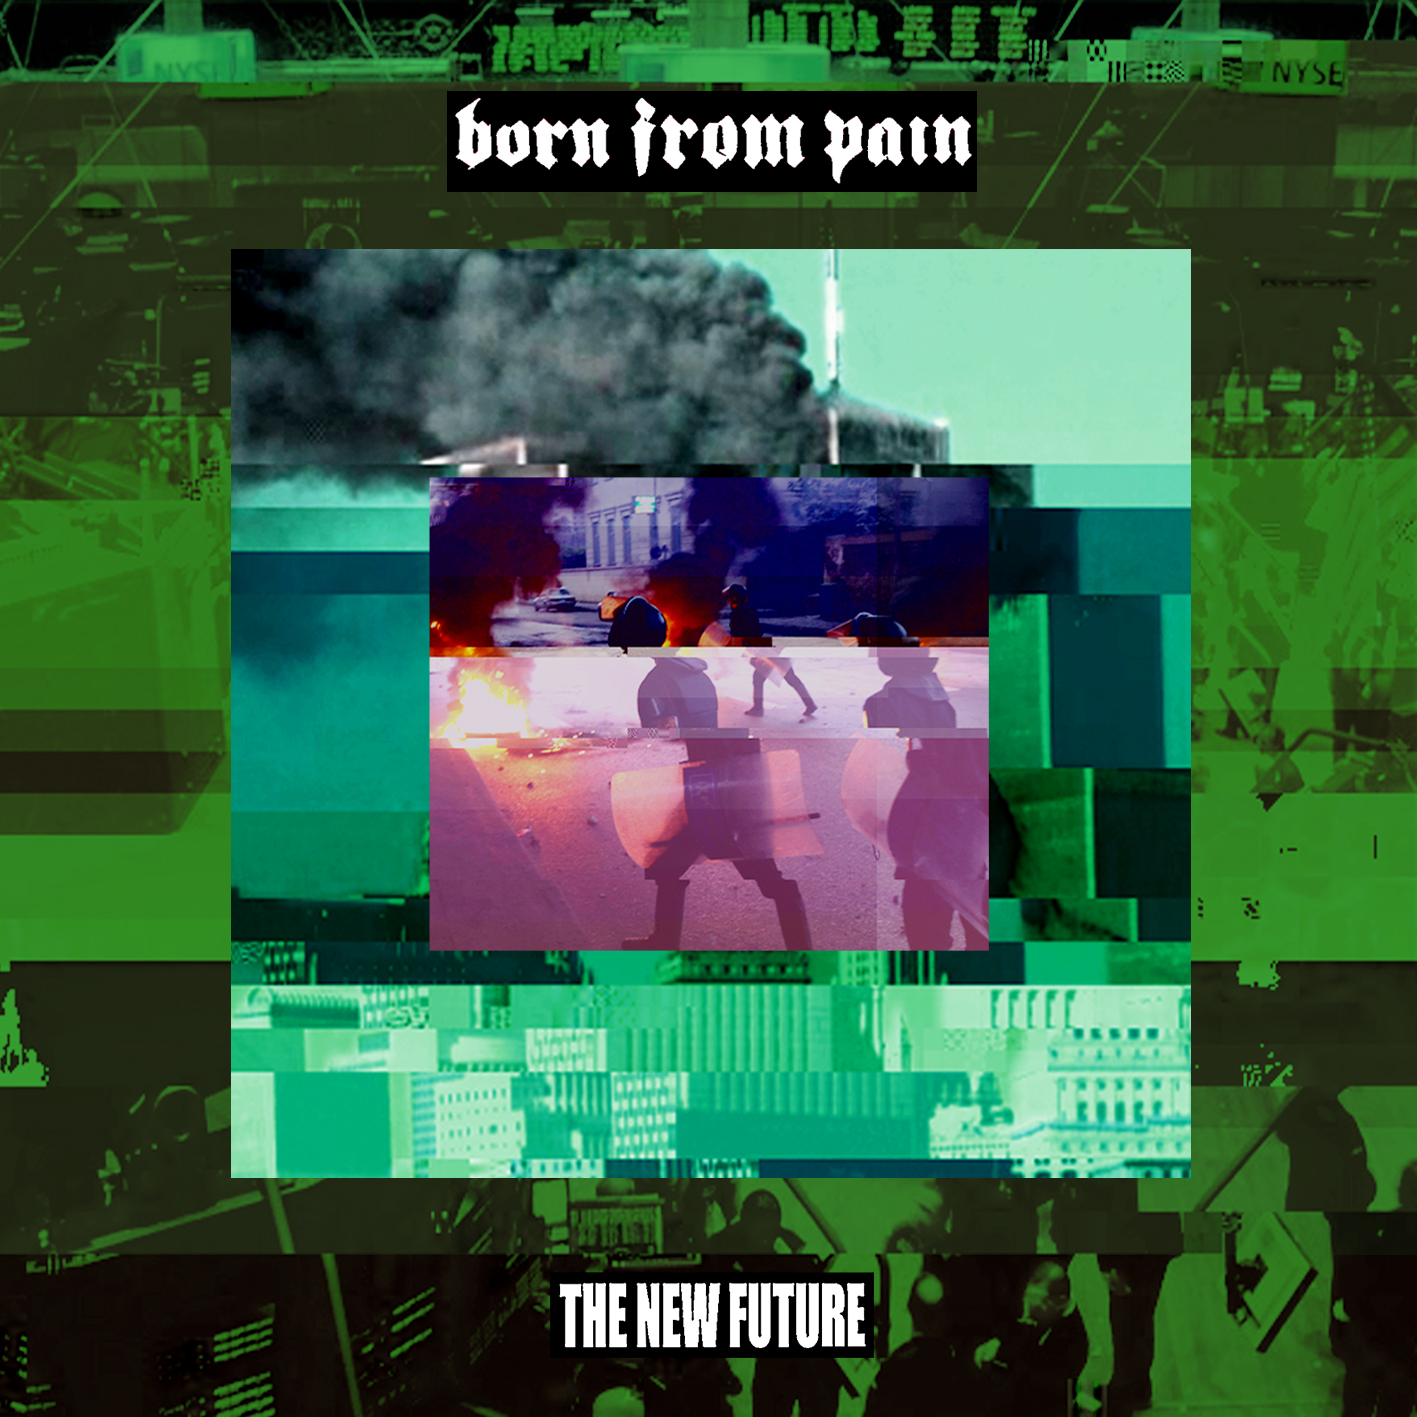 """News Added Mar 21, 2012 The 6th full-lengt """"The New Future"""" by Dutch Hardcore band """"Born From Pain"""" will be released will be released for free! But they are so good, I needed to have them here anyway. Check there new video on YouTube: https://www.youtube.com/watch?v=sIhfxpxOzZs Submitted By Al"""